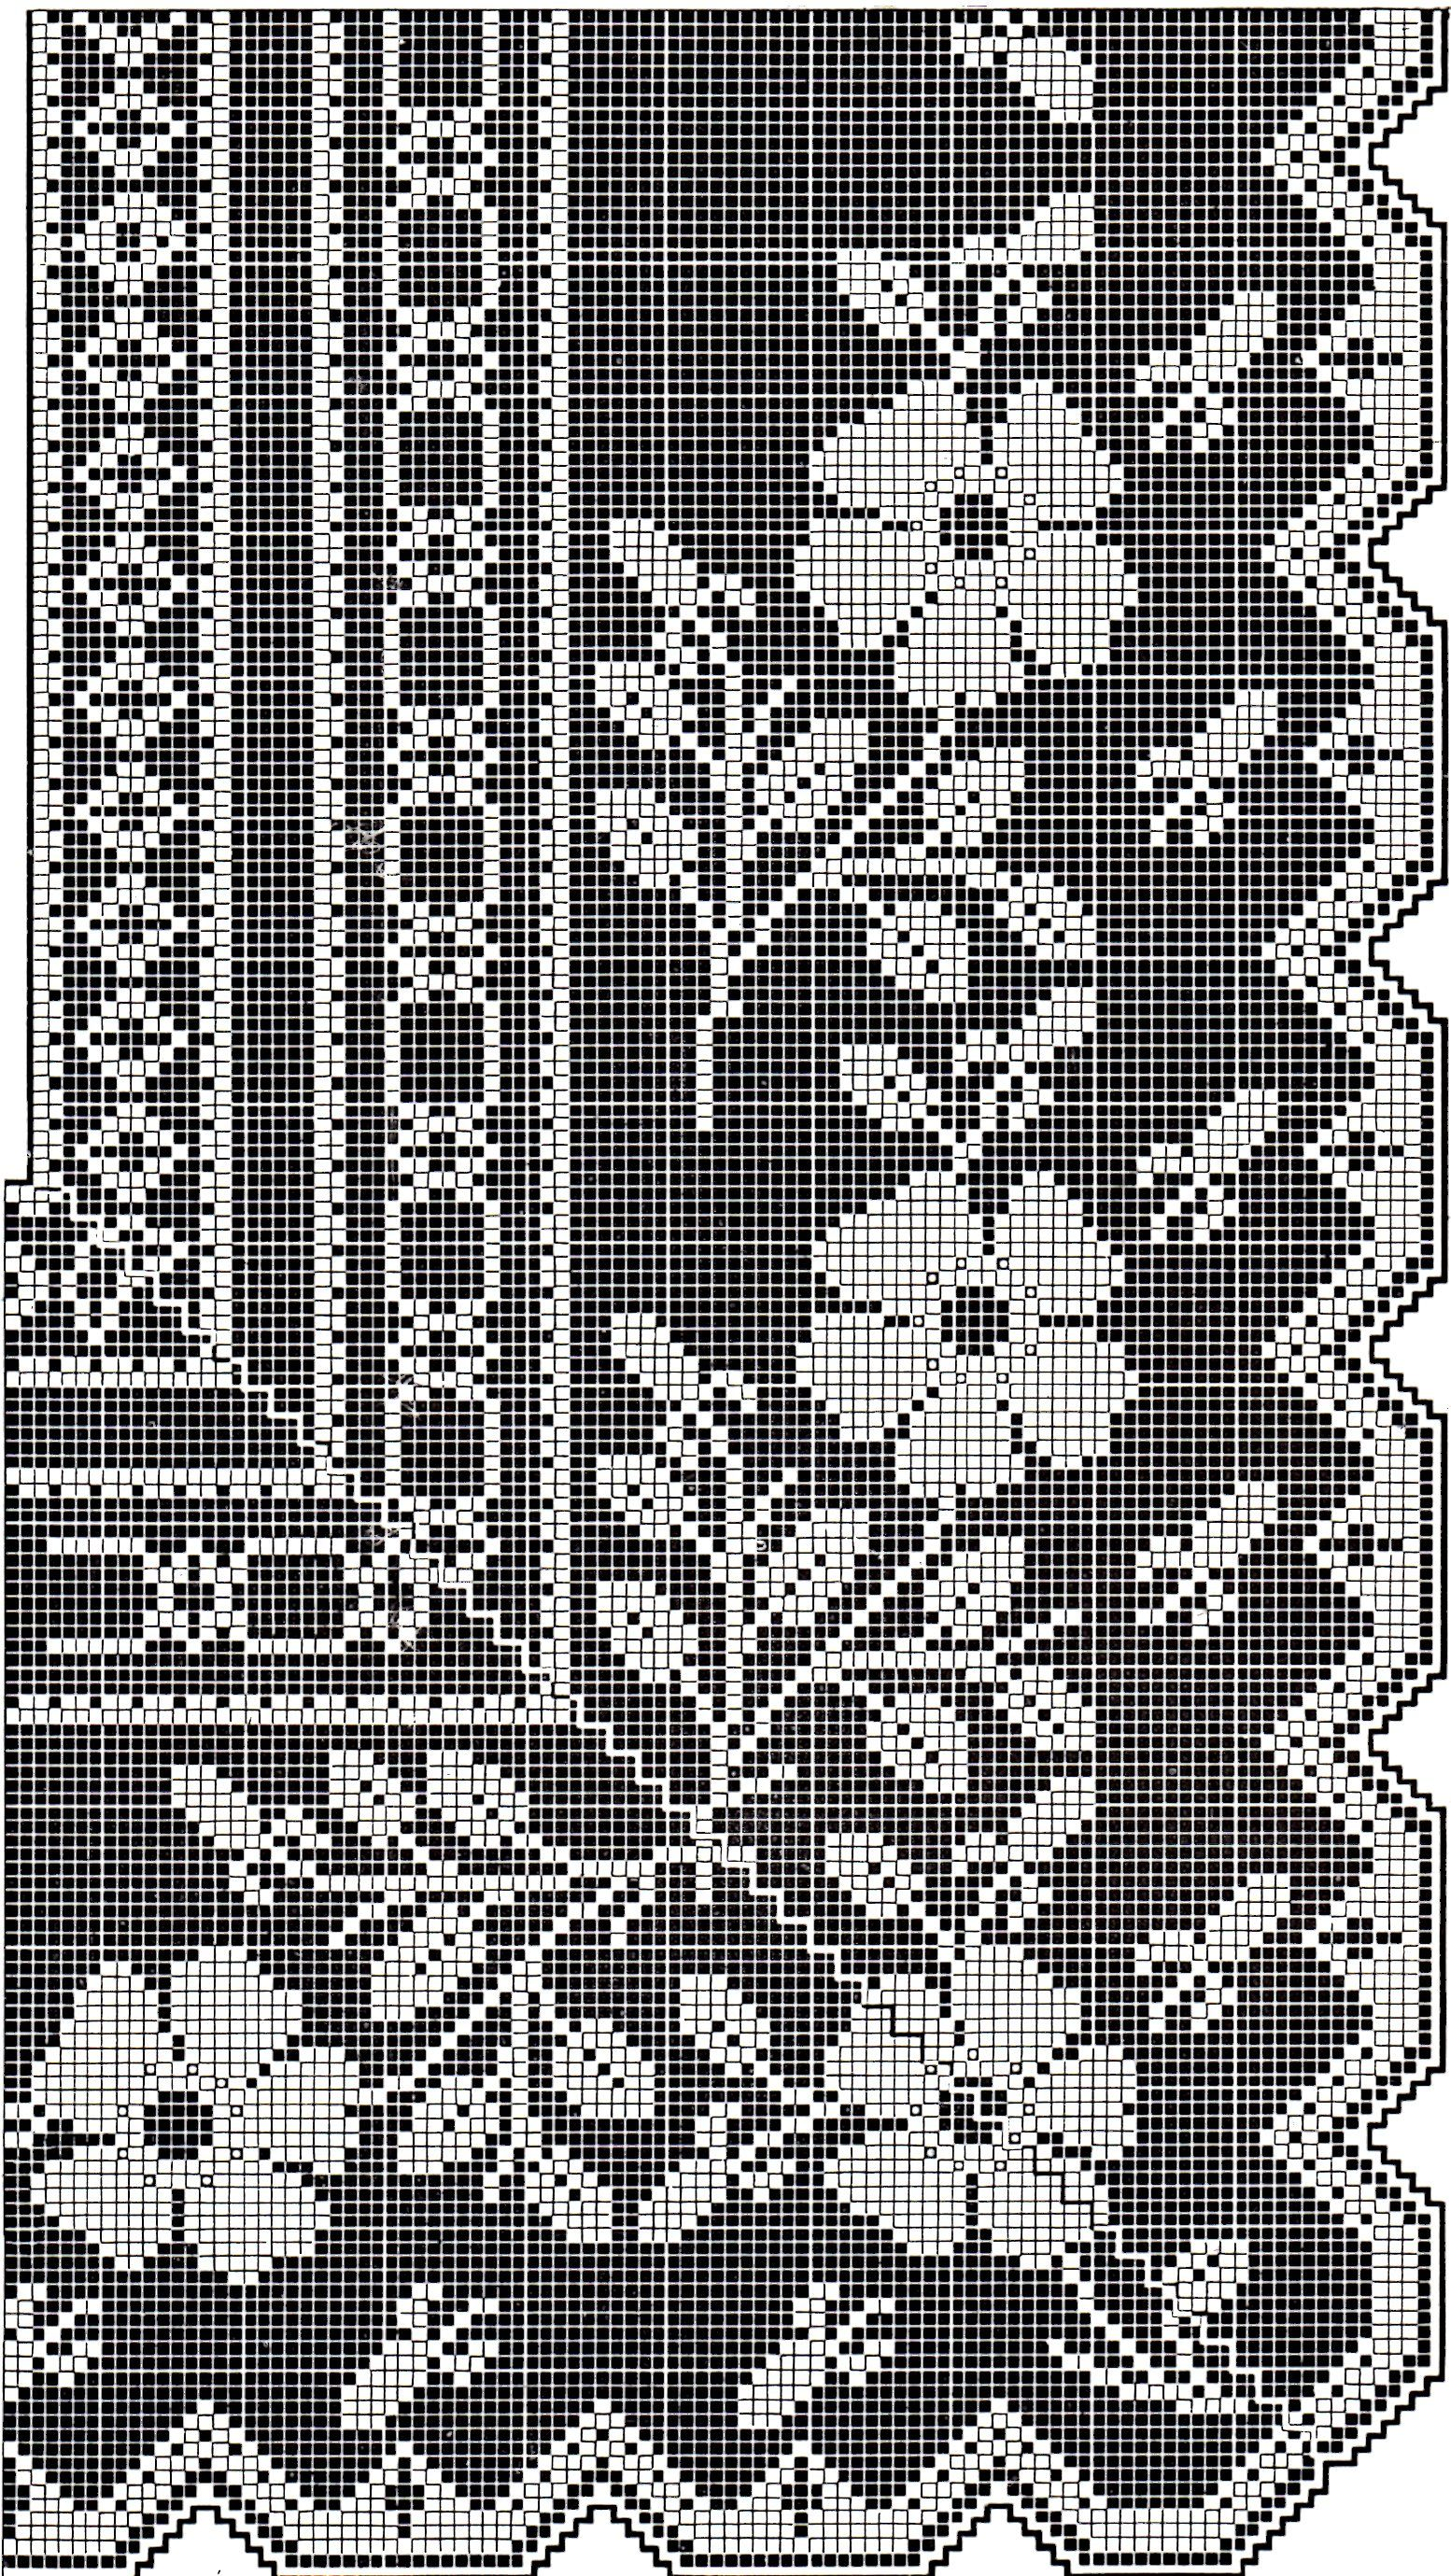 Vintage filet crochet pattern filet crochet 9 pinterest vintage filet crochet pattern ccuart Images